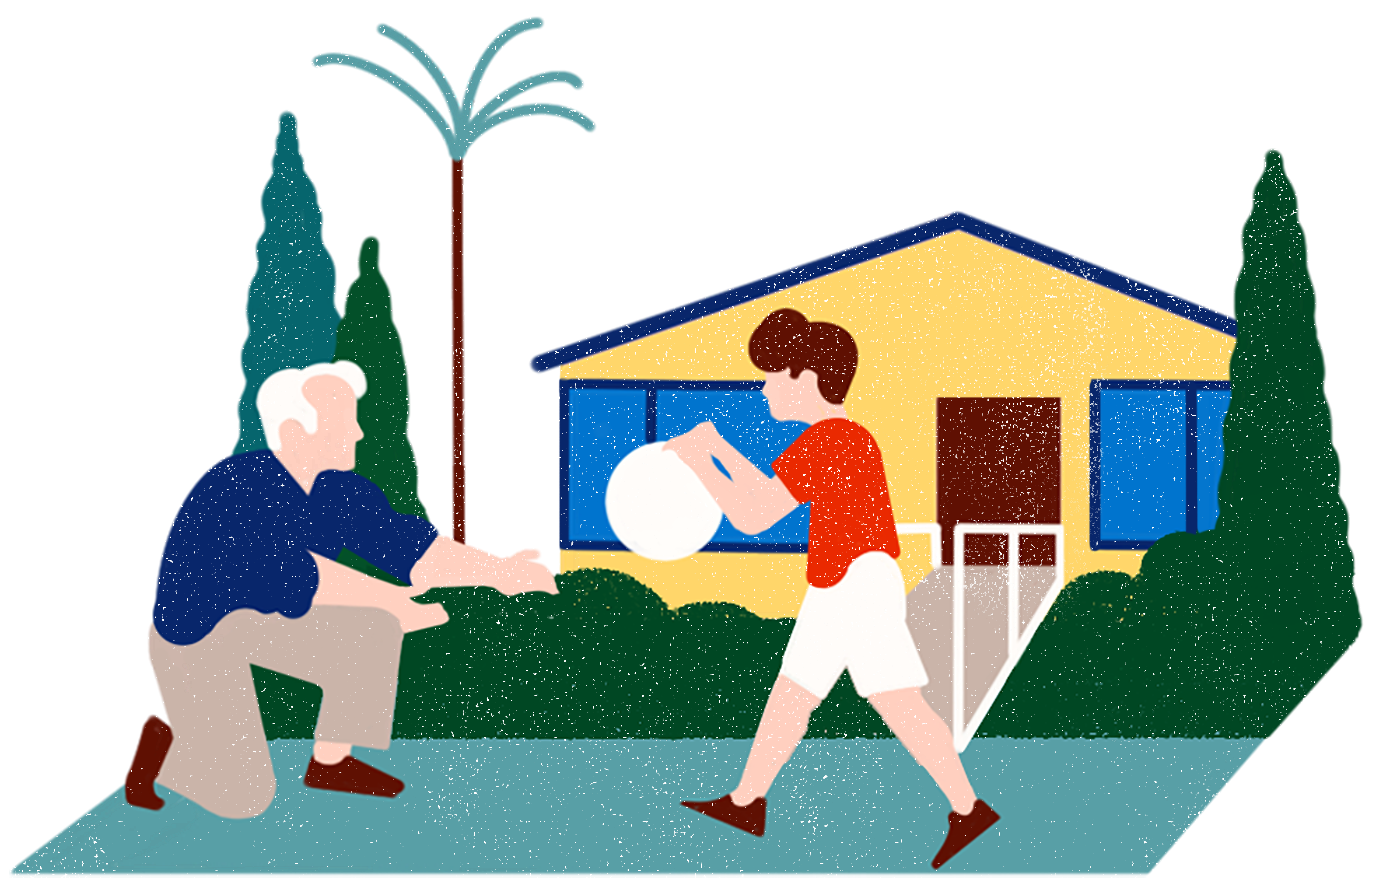 Illustration of a grandfather playing with his grandchild in front of a garage that's been converted to an ADU.